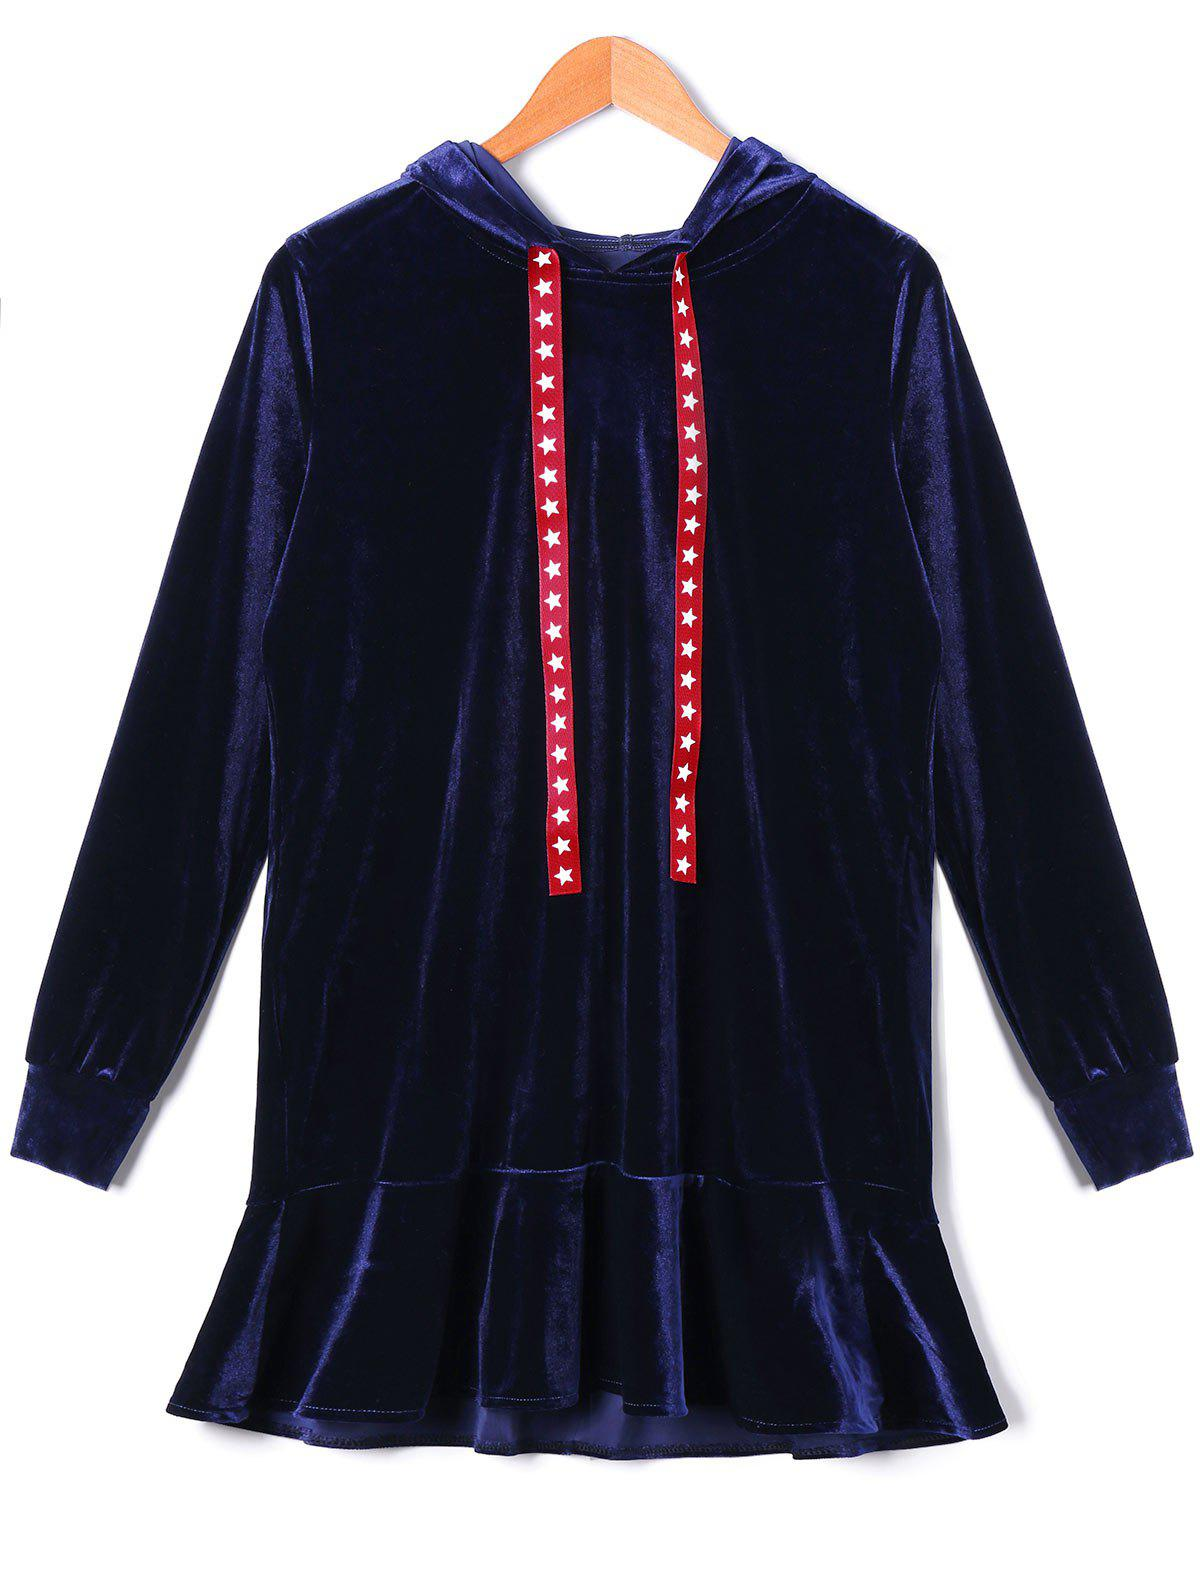 Stars Drawstring Velvet Hooded Drop Waist Dress - DEEP BLUE L